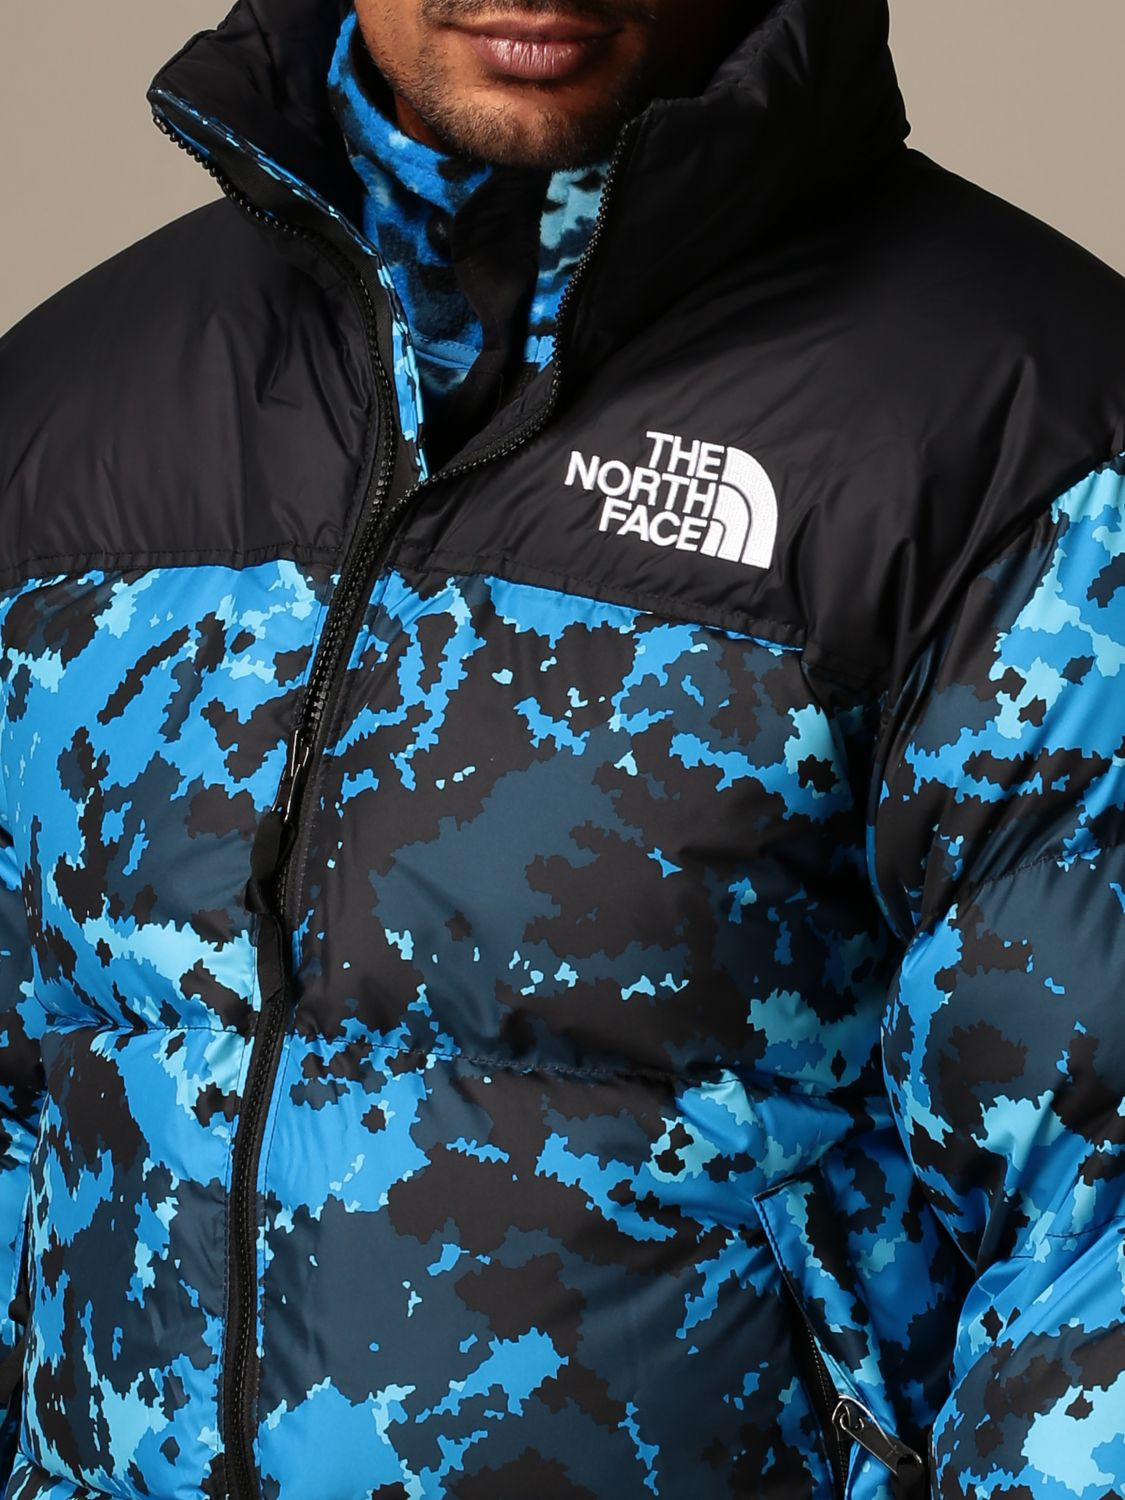 Куртка The North Face: Куртка Мужское The North Face синий 4